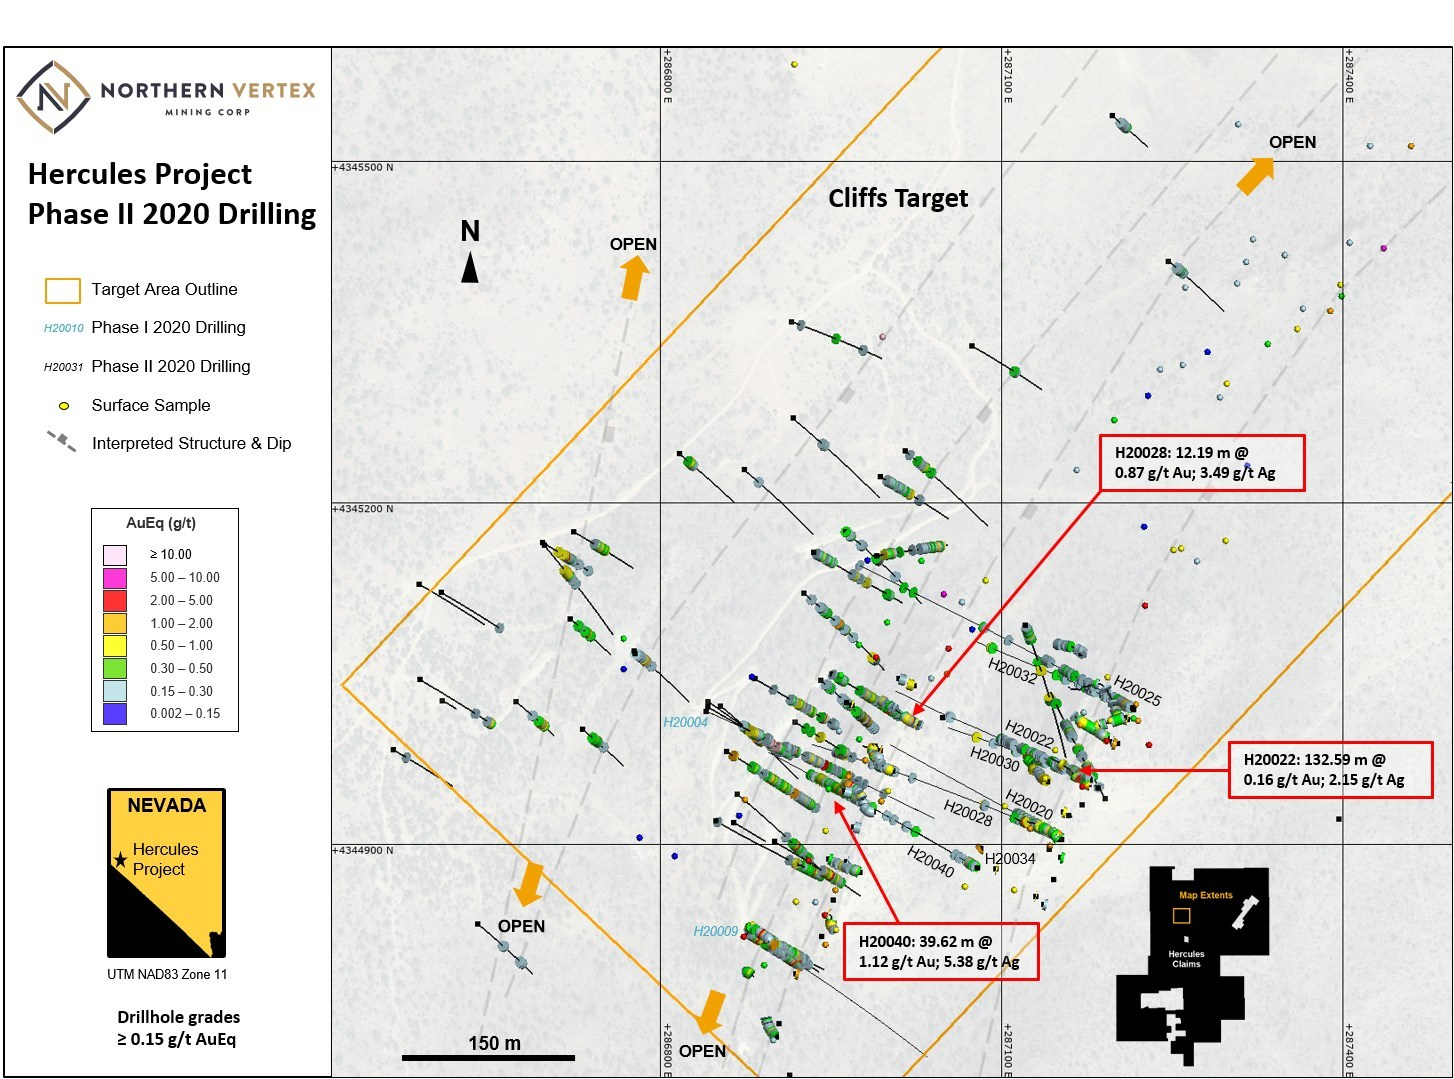 Figure 2. Plan view of Cliffs target drilling (CNW Group/Northern Vertex Mining Corp.)